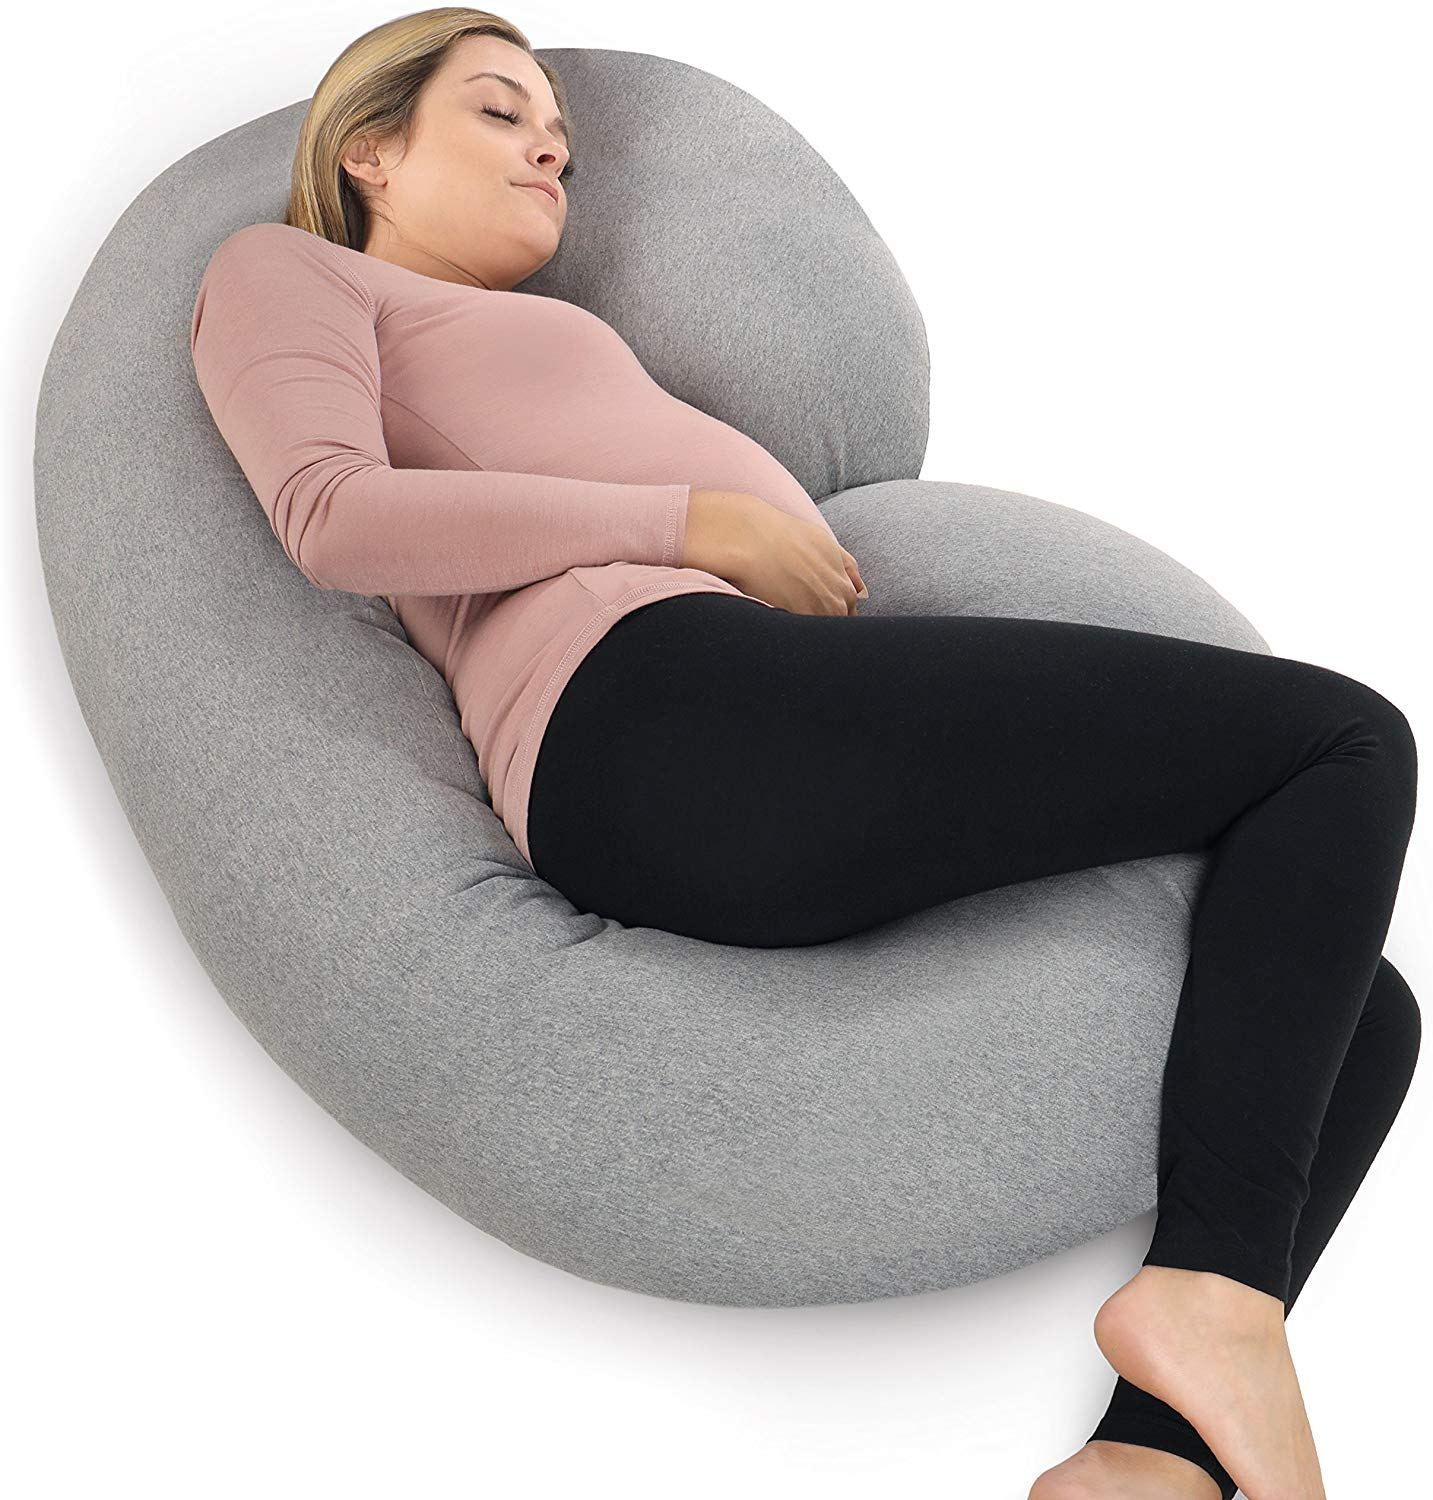 PharMeDoc best pregnancy pillow review by www.dailysleep.org